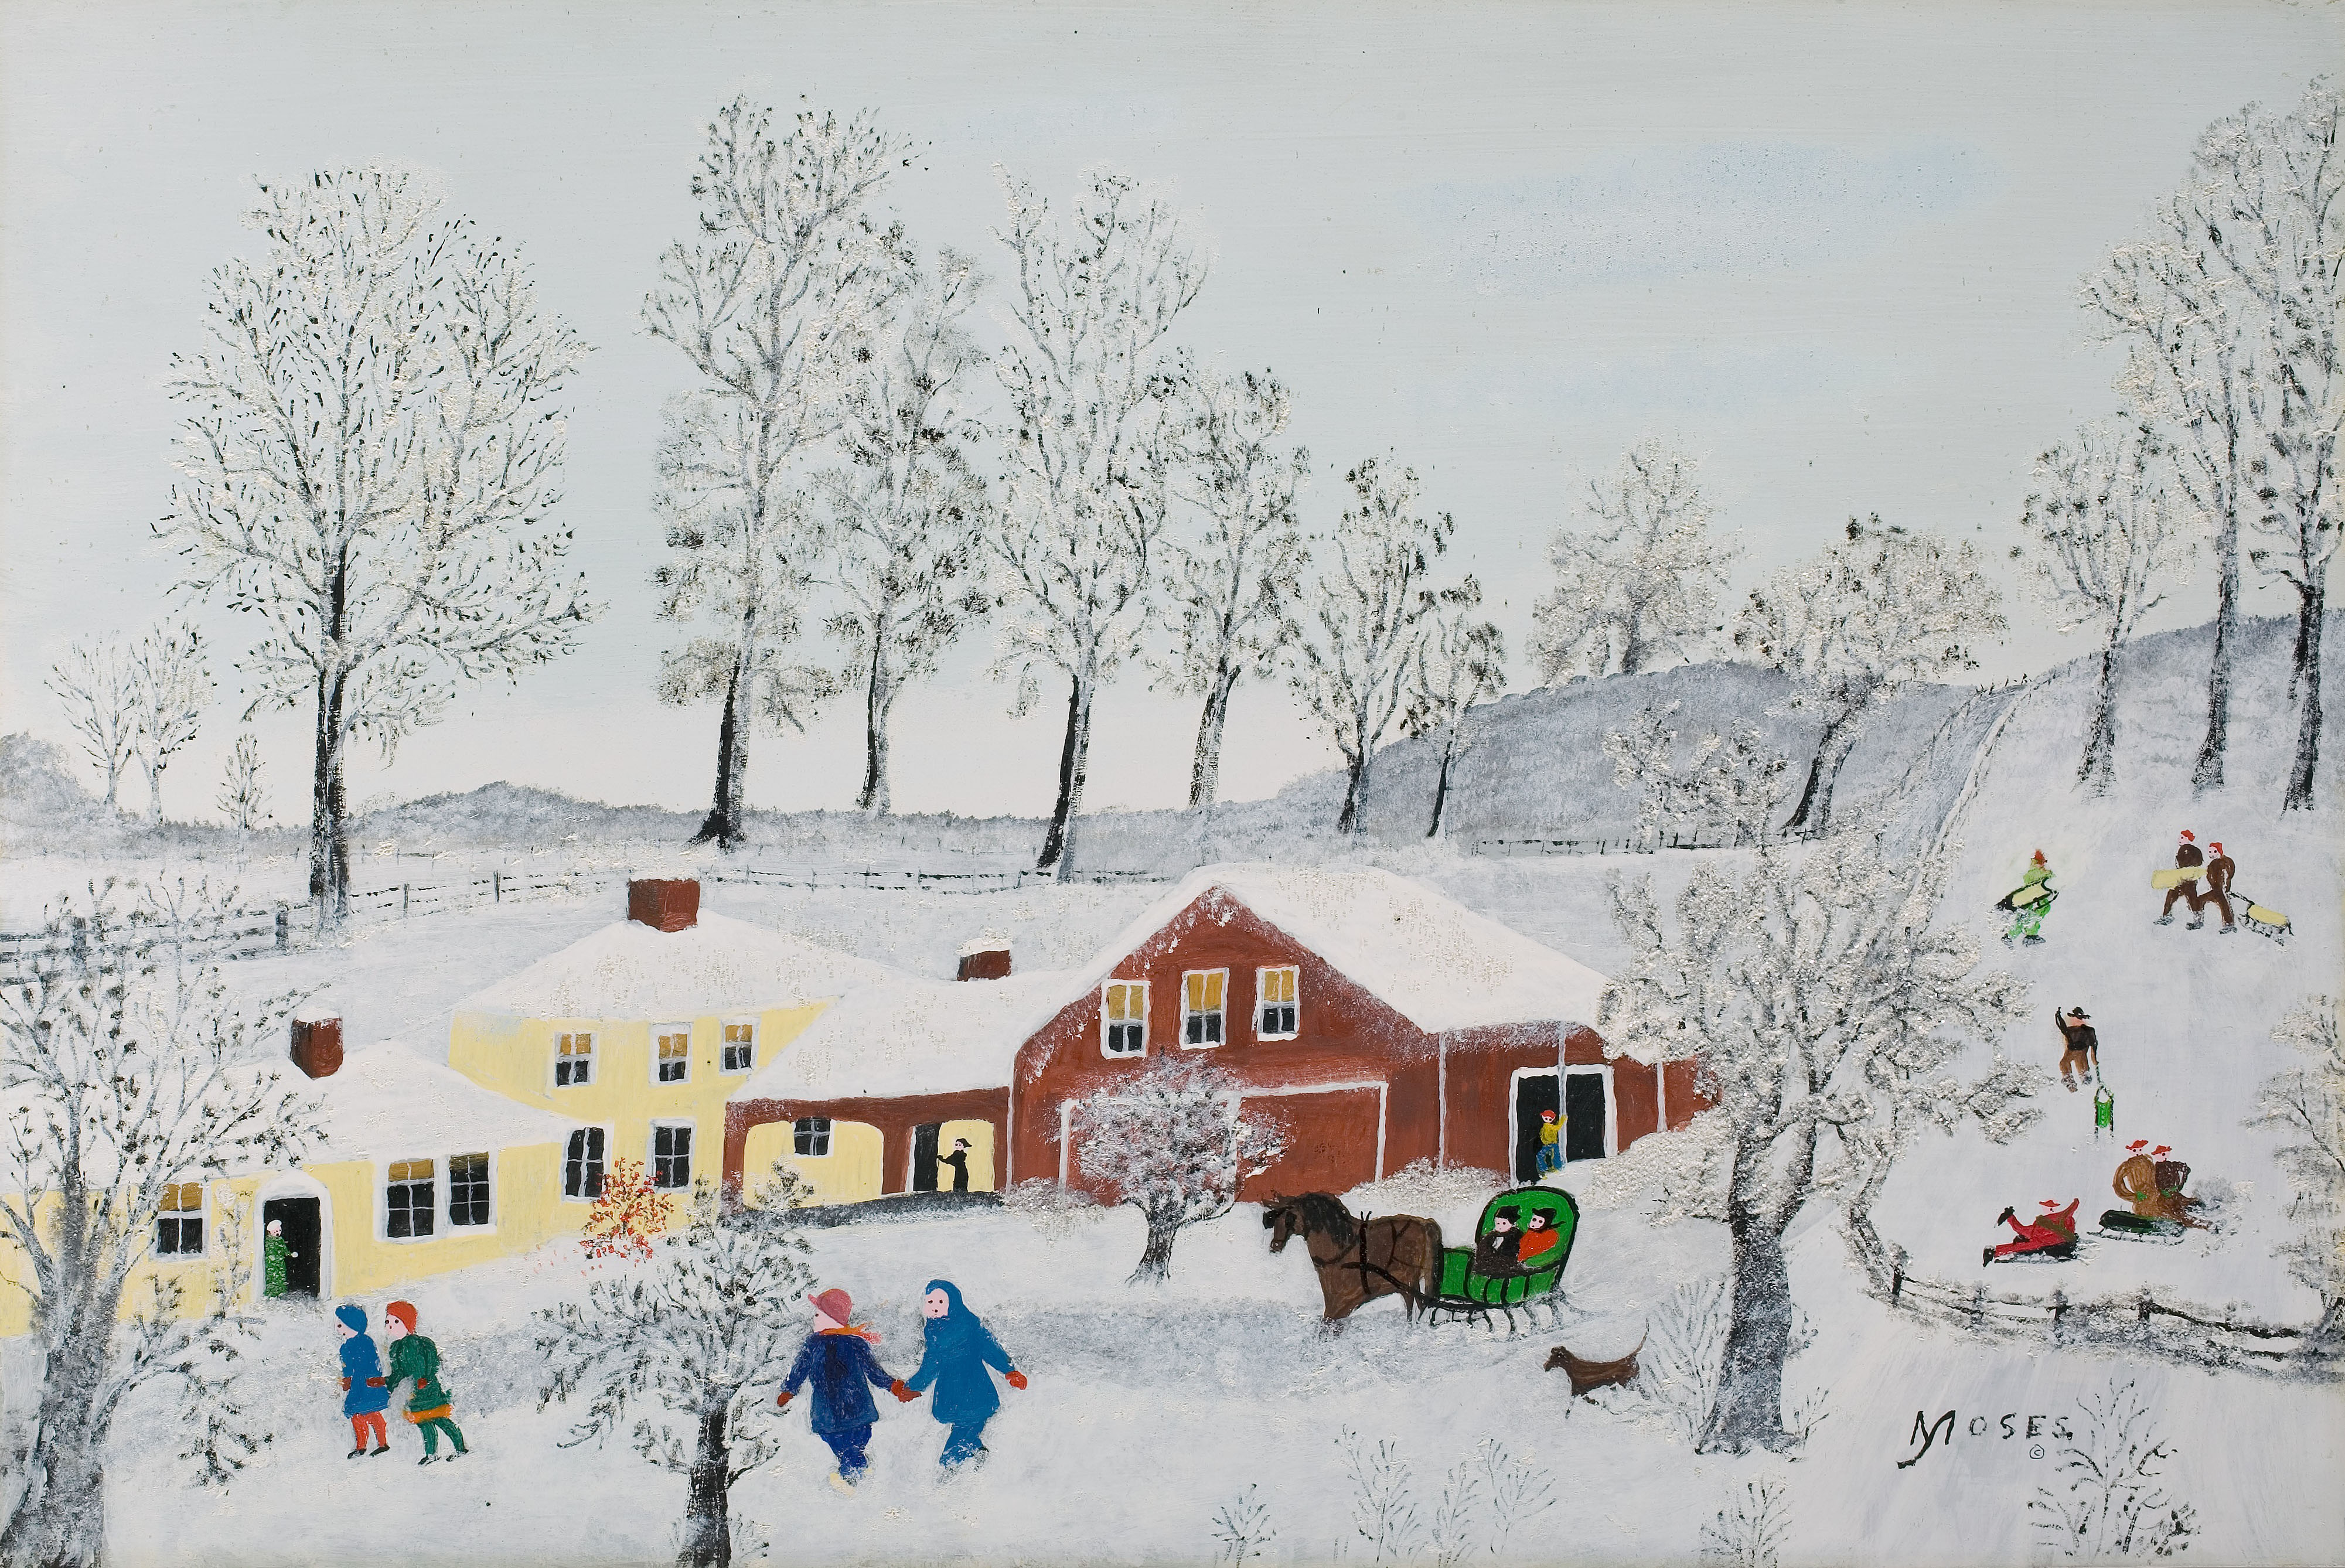 Yellow House, 1955 (oil on board) Anna Mary Robertson Moses (Grandma Moses) (1860-1961) / Davis Museum and Cultural Center, Wellesley College, MA, USA / Gift of Jeannette Austin Hosch Osgood (Class of 1930) / Bridgeman Images